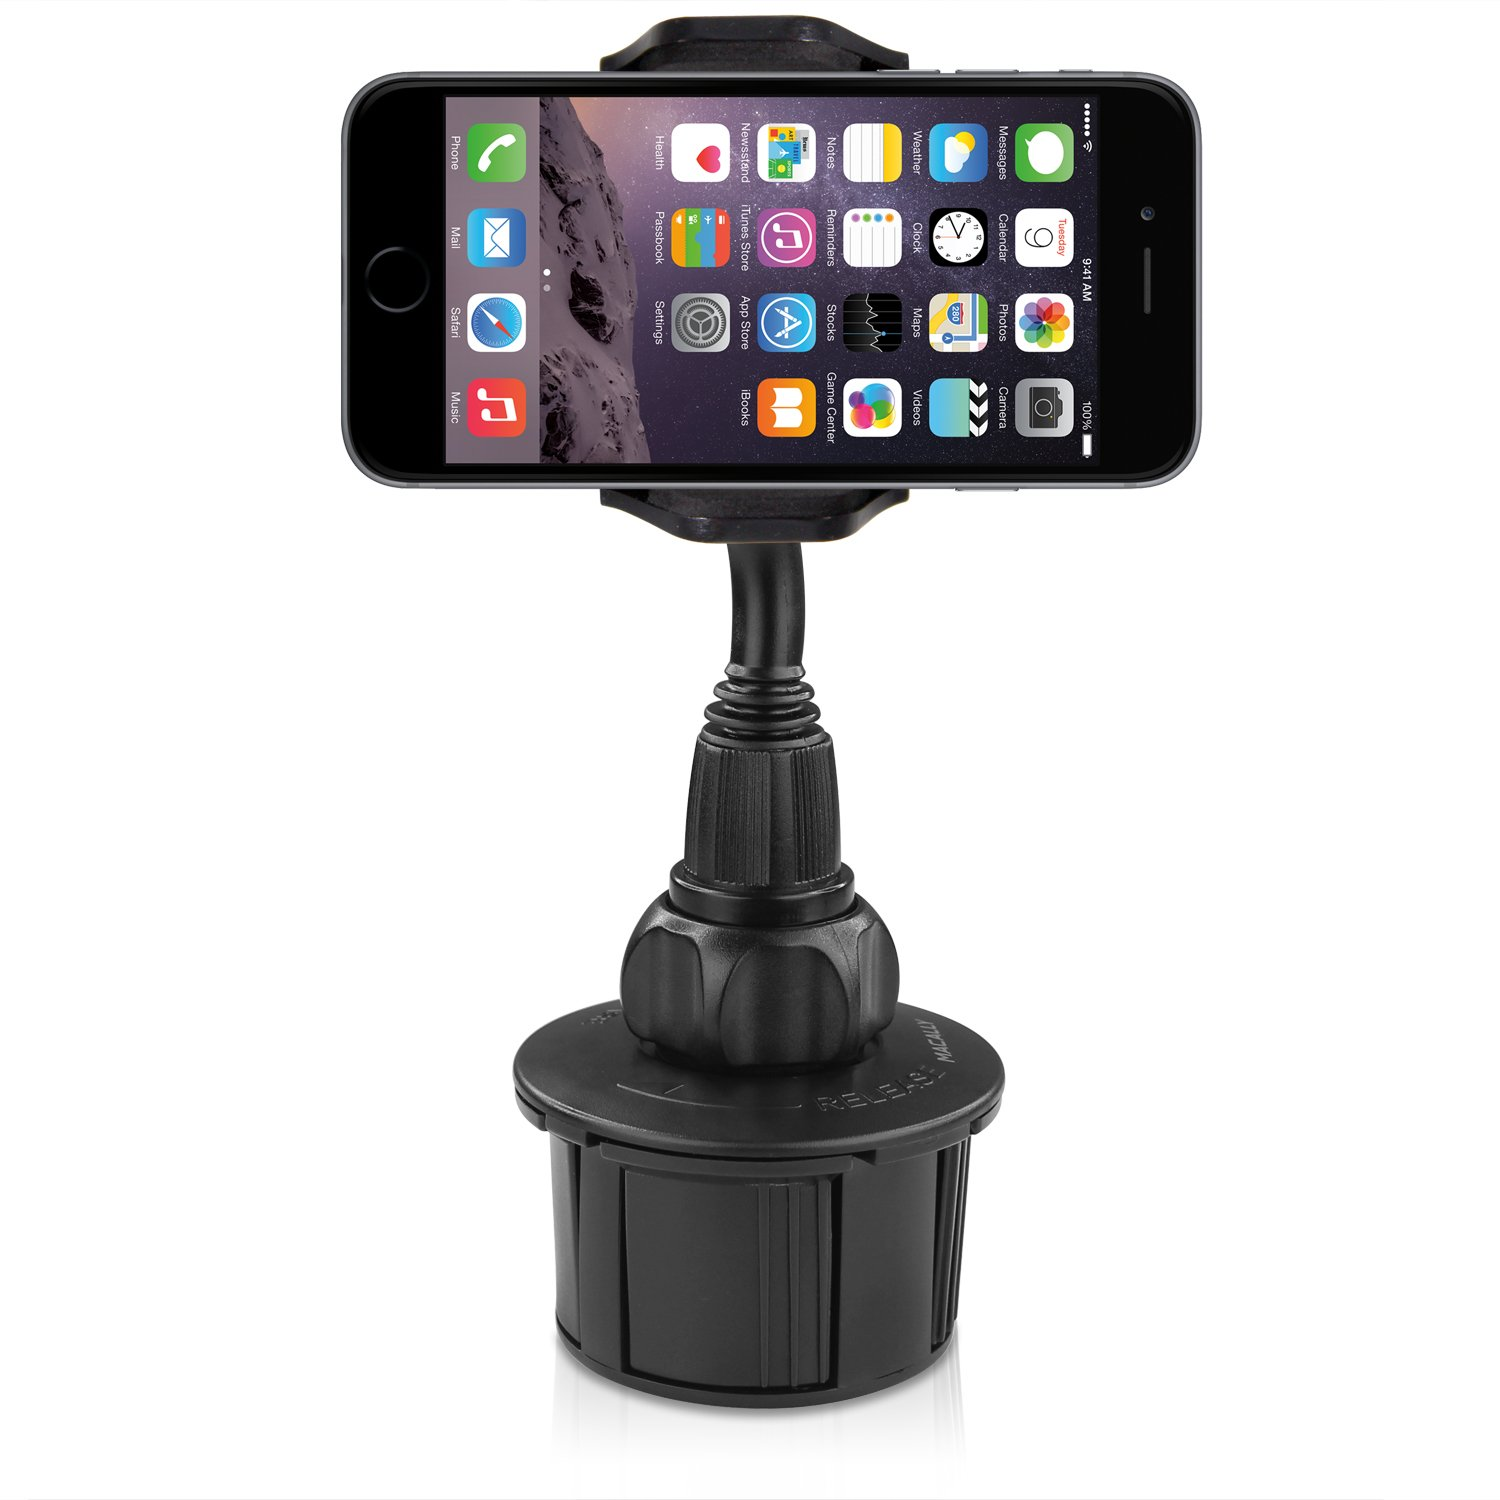 Macally Adjustable Automobile Cup Holder Phone Mount for iPhone X 8 8+ 7 7 Plus 6s Plus 6s SE Samsung Galaxy S9 S9+ S8 S7 Edge S6 S5 Note 5, iPod, Smartphones, MP3, GPS etc (MCUPMP) by Macally (Image #7)